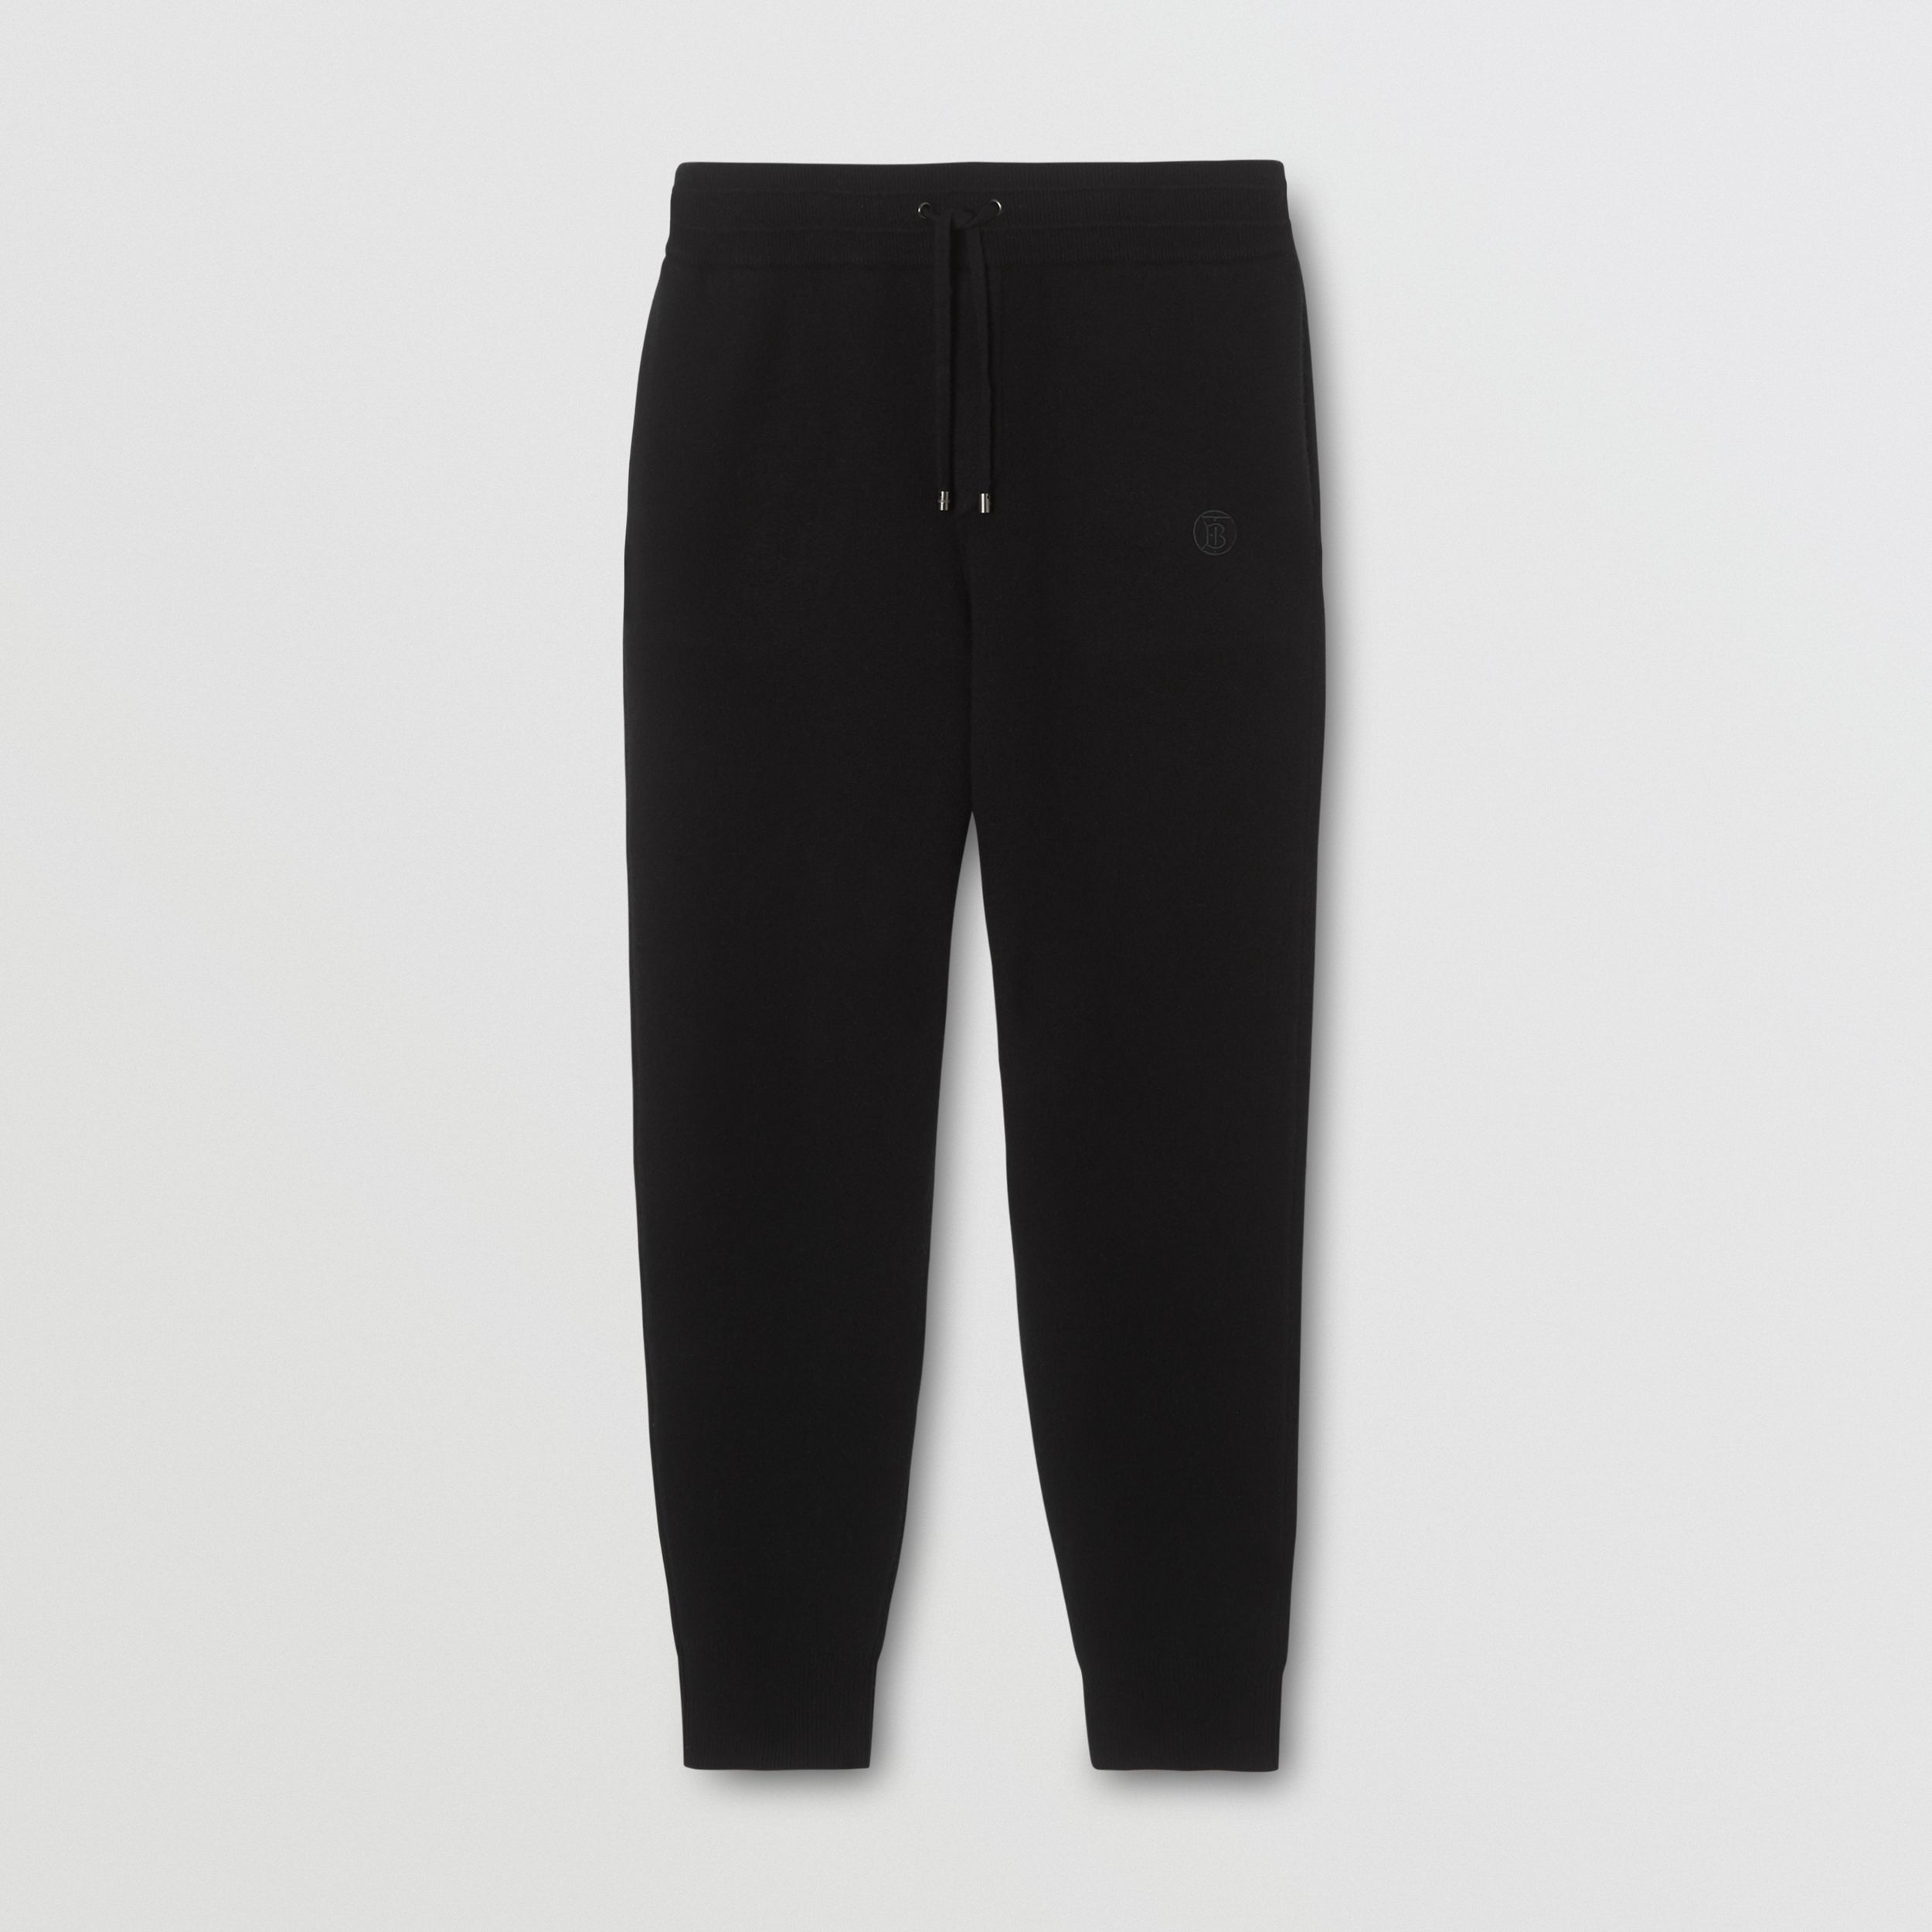 Monogram Motif Cashmere Blend Jogging Pants in Black - Men | Burberry - 4